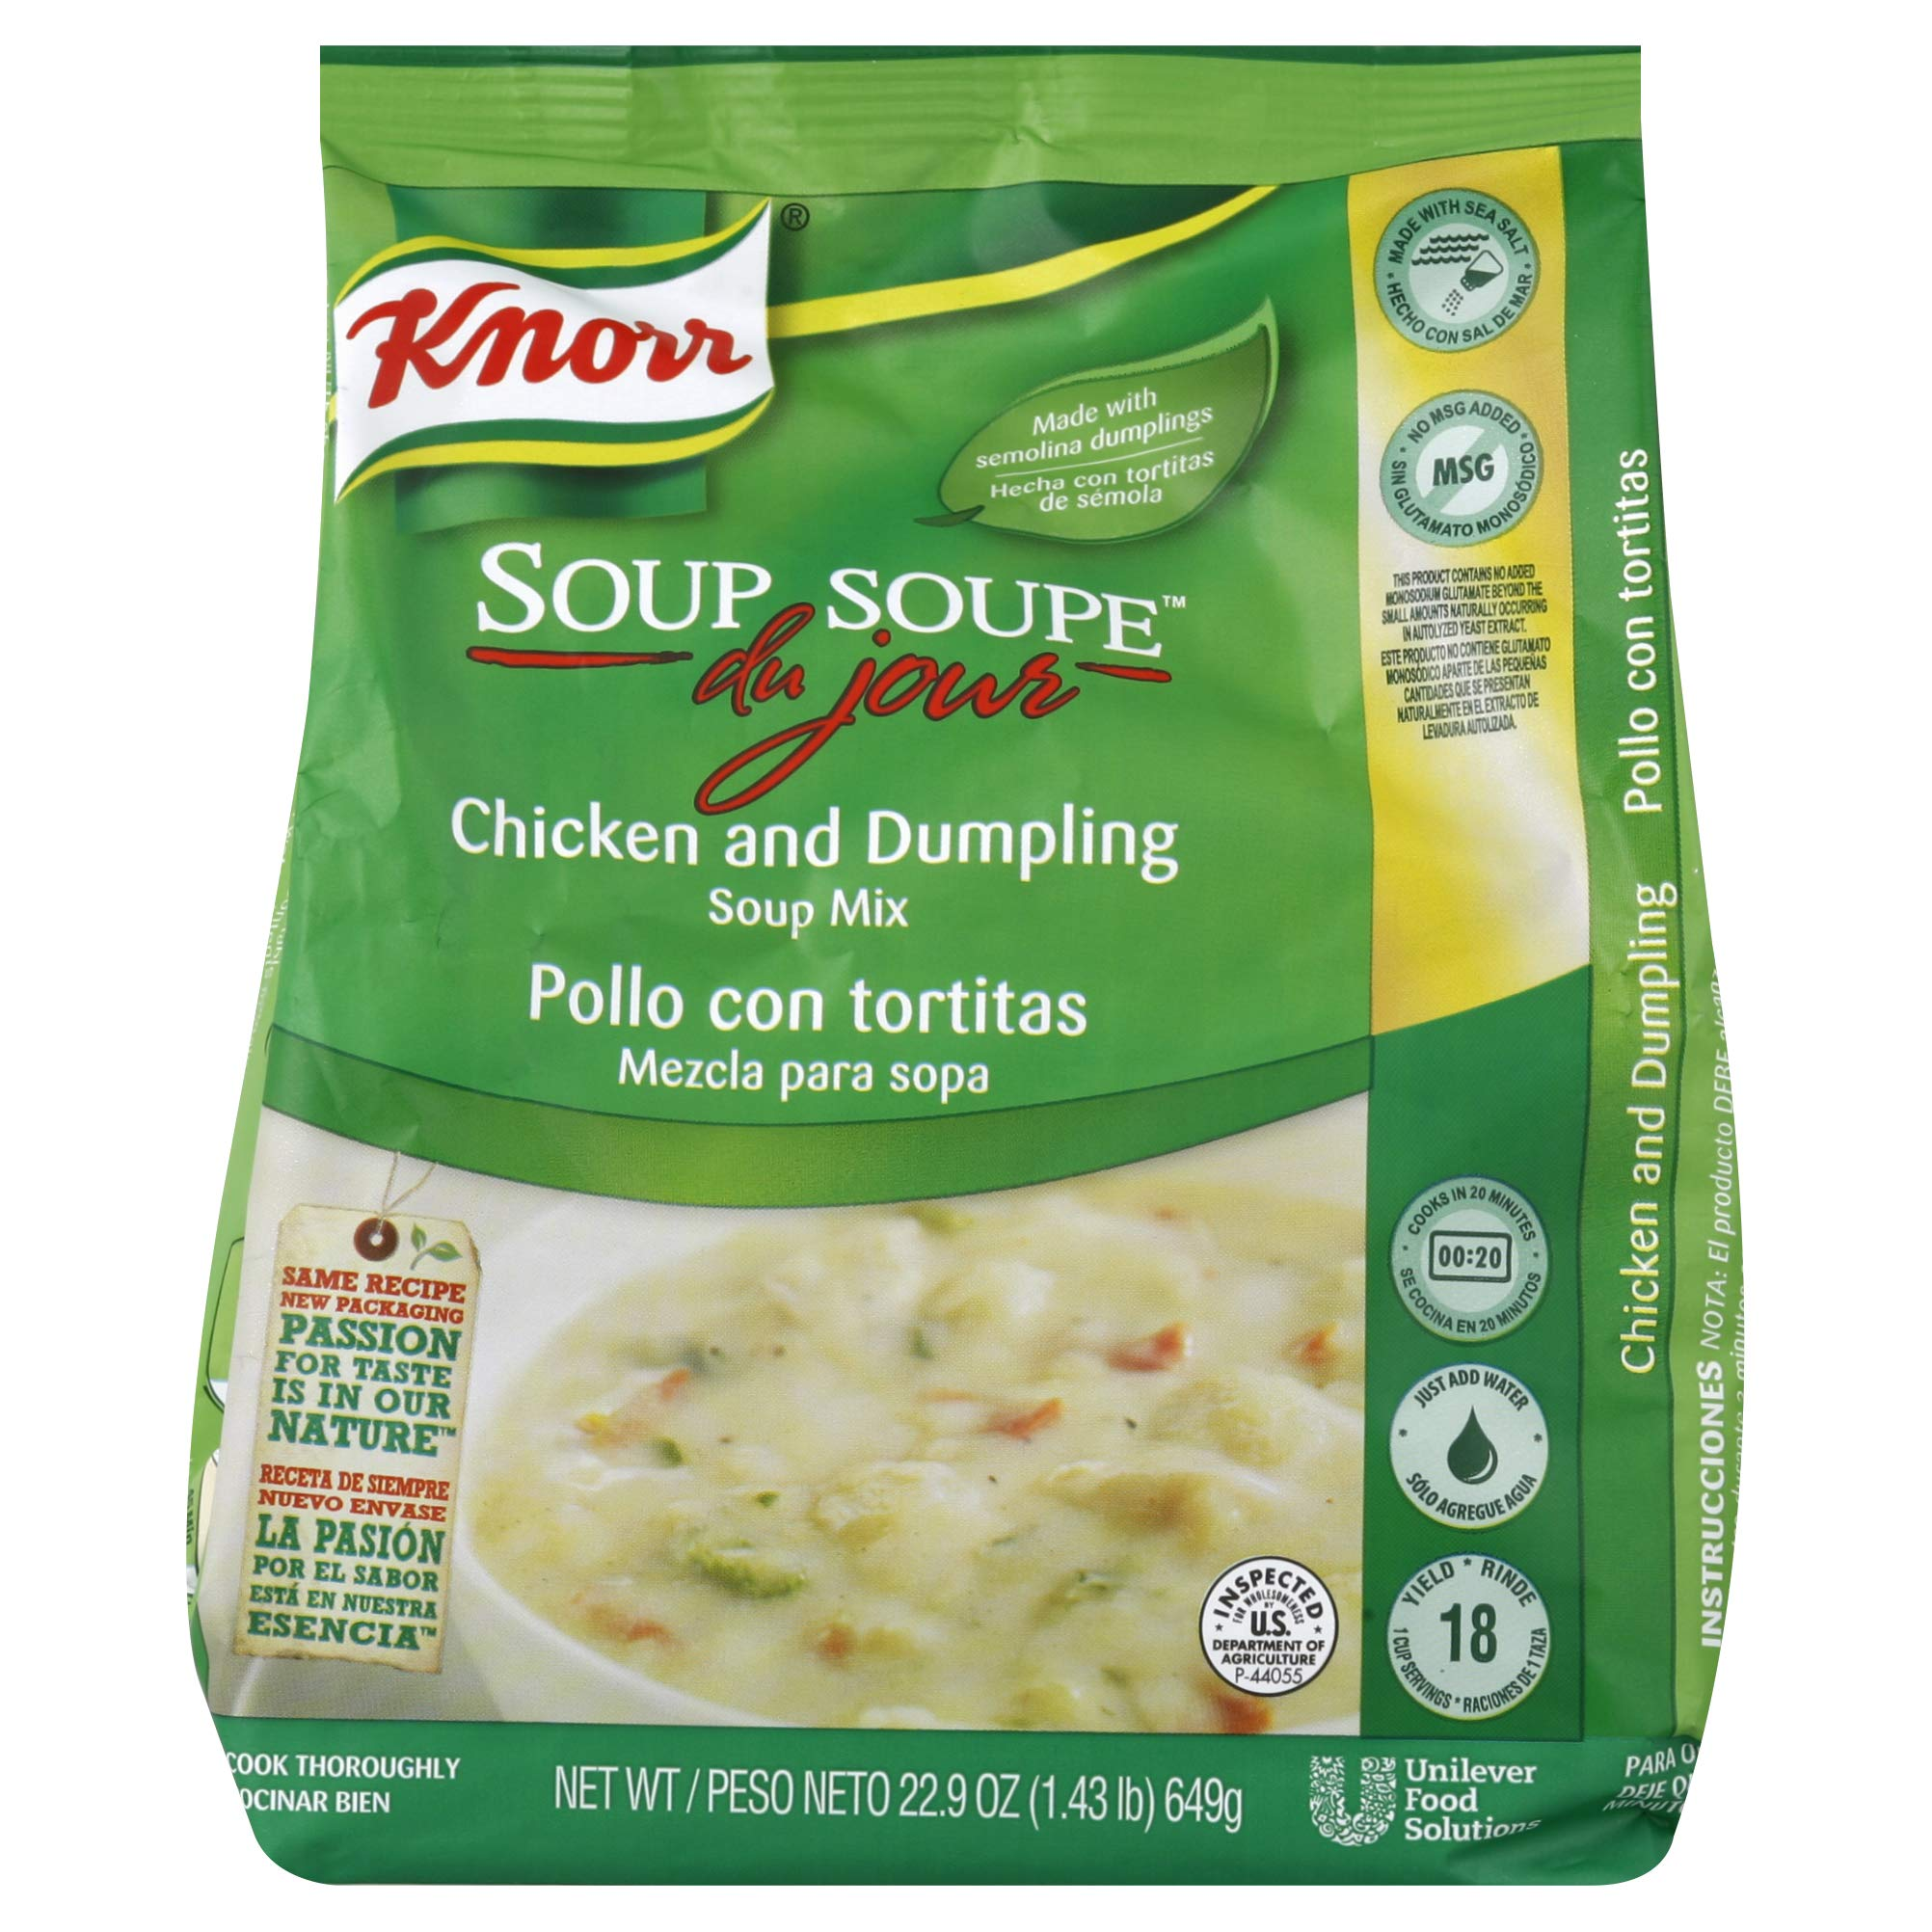 Knorr Soup du Jour Mix Chicken and Dumpling 22.9 oz, Pack of 4